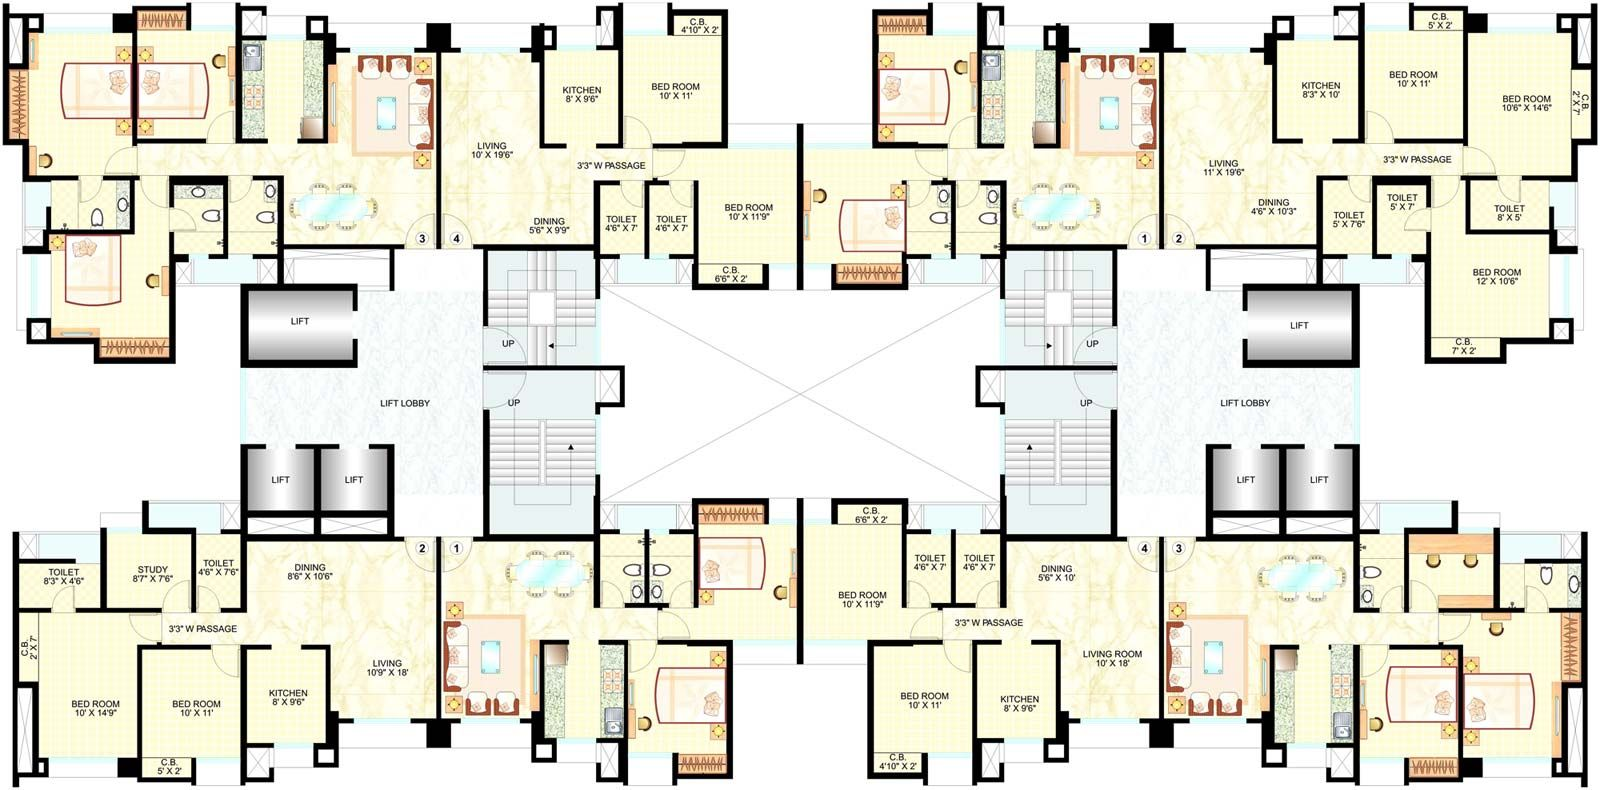 2 bedroom apartment floor plans 1015822 decorating ideas housing pinterest apartment floor Two bedroom apartments